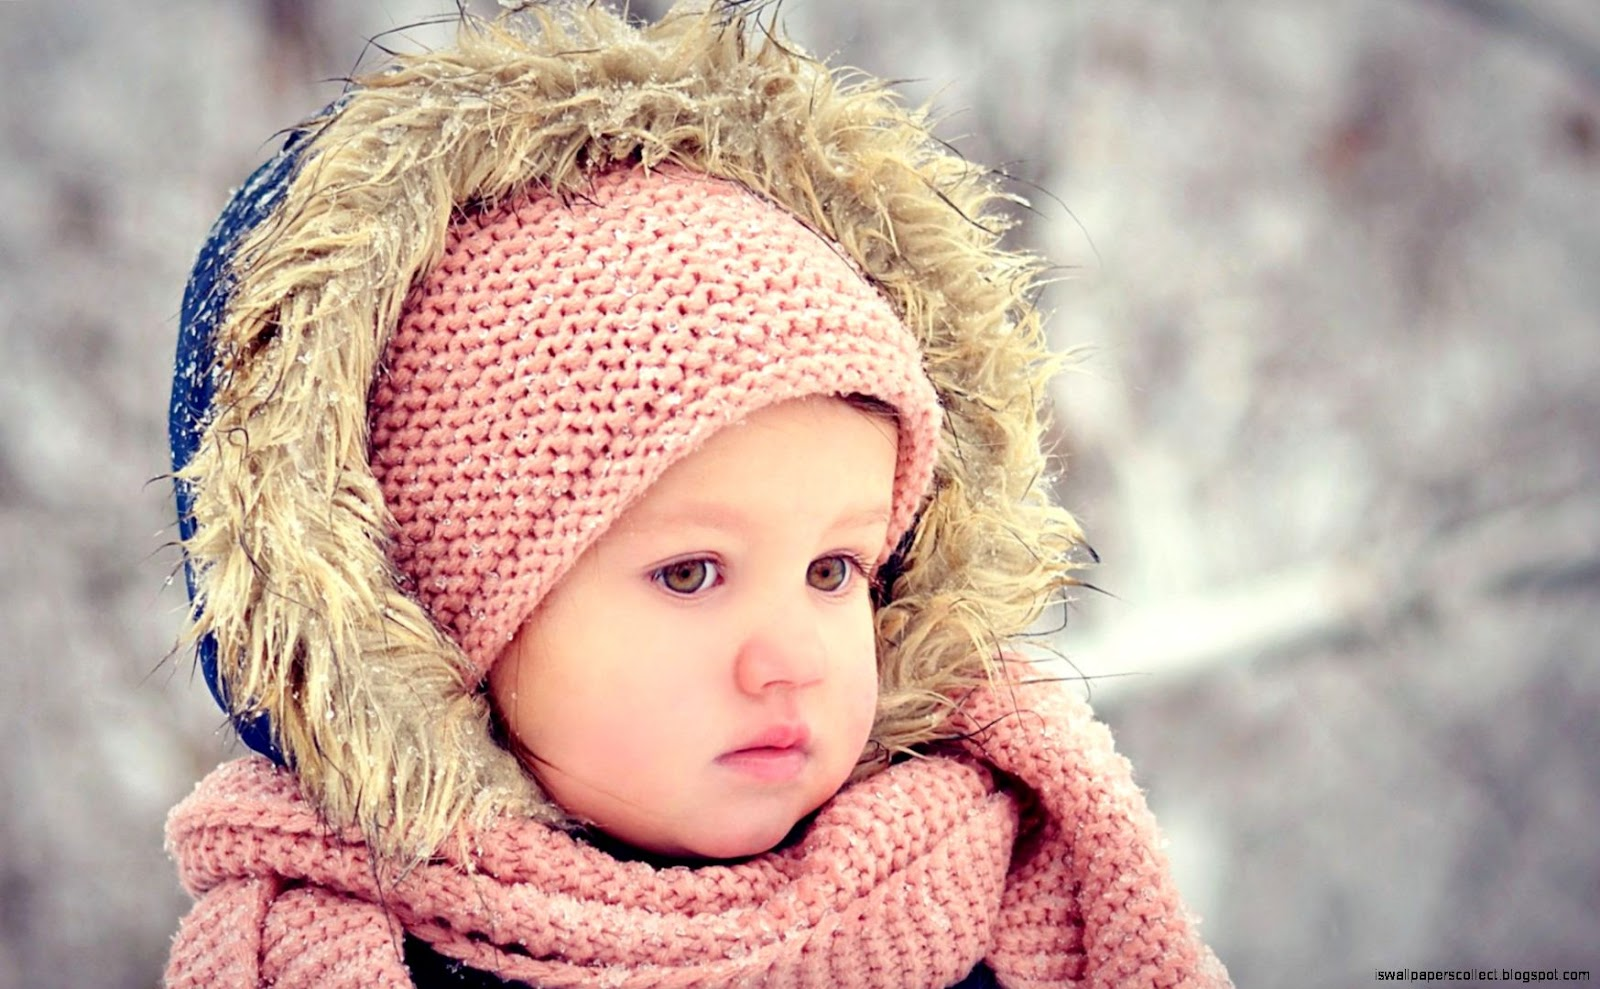 Cute Baby Girl Sad Wallpapers Collection